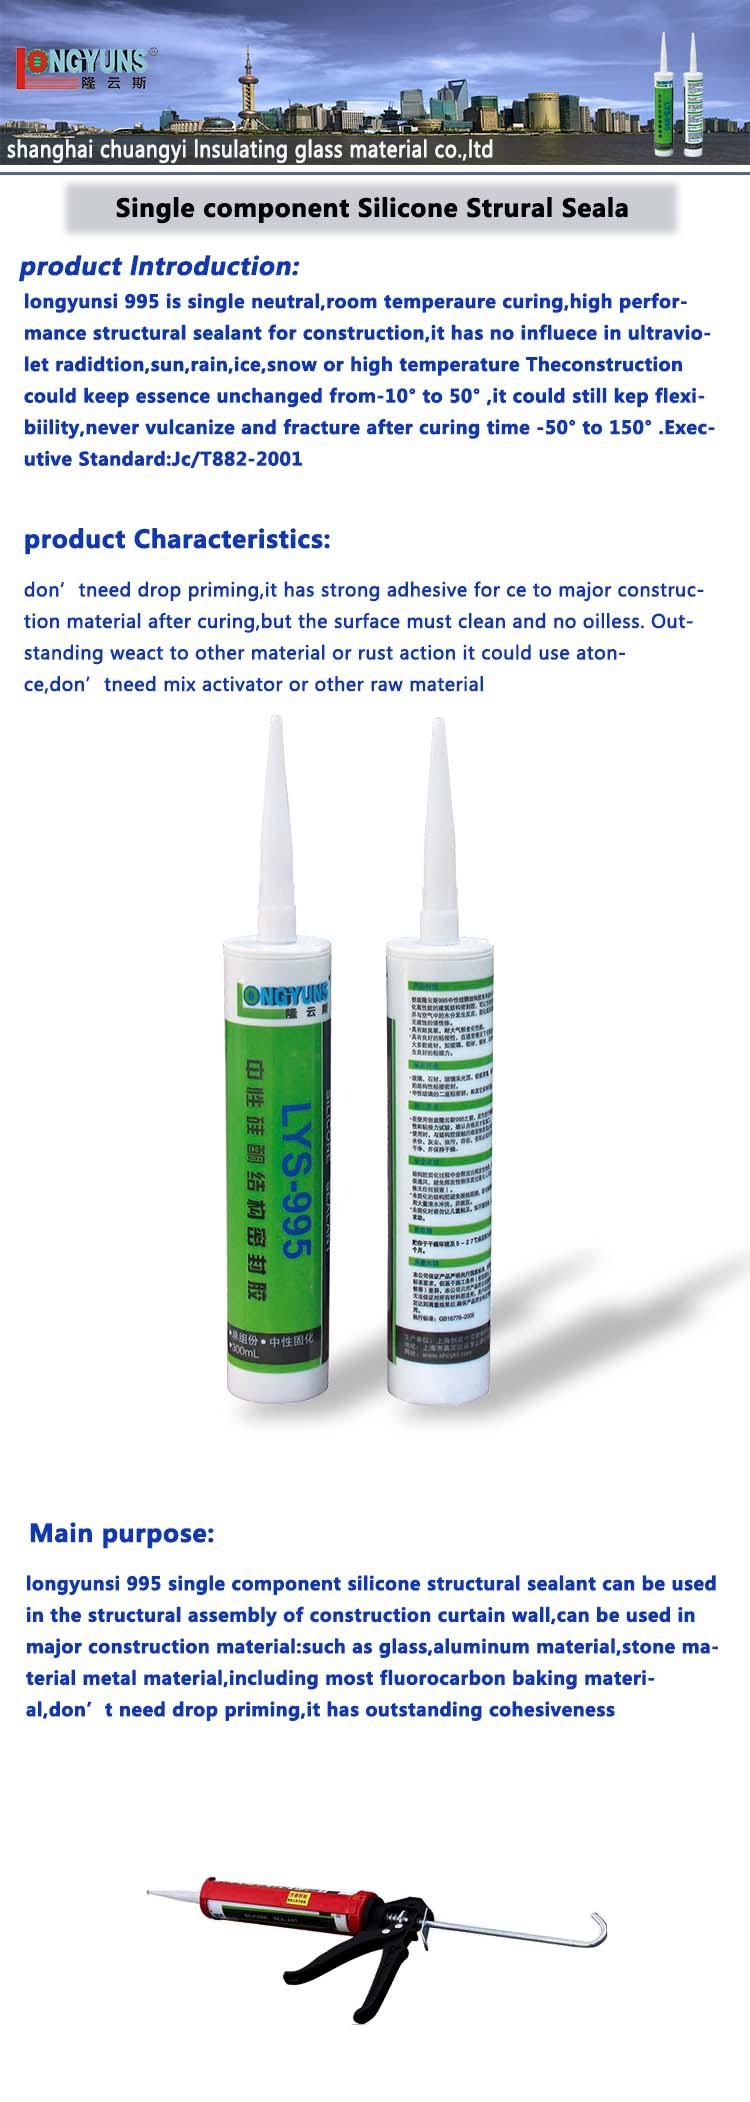 CY-208 Single component structural silicone sealant for curtain wall